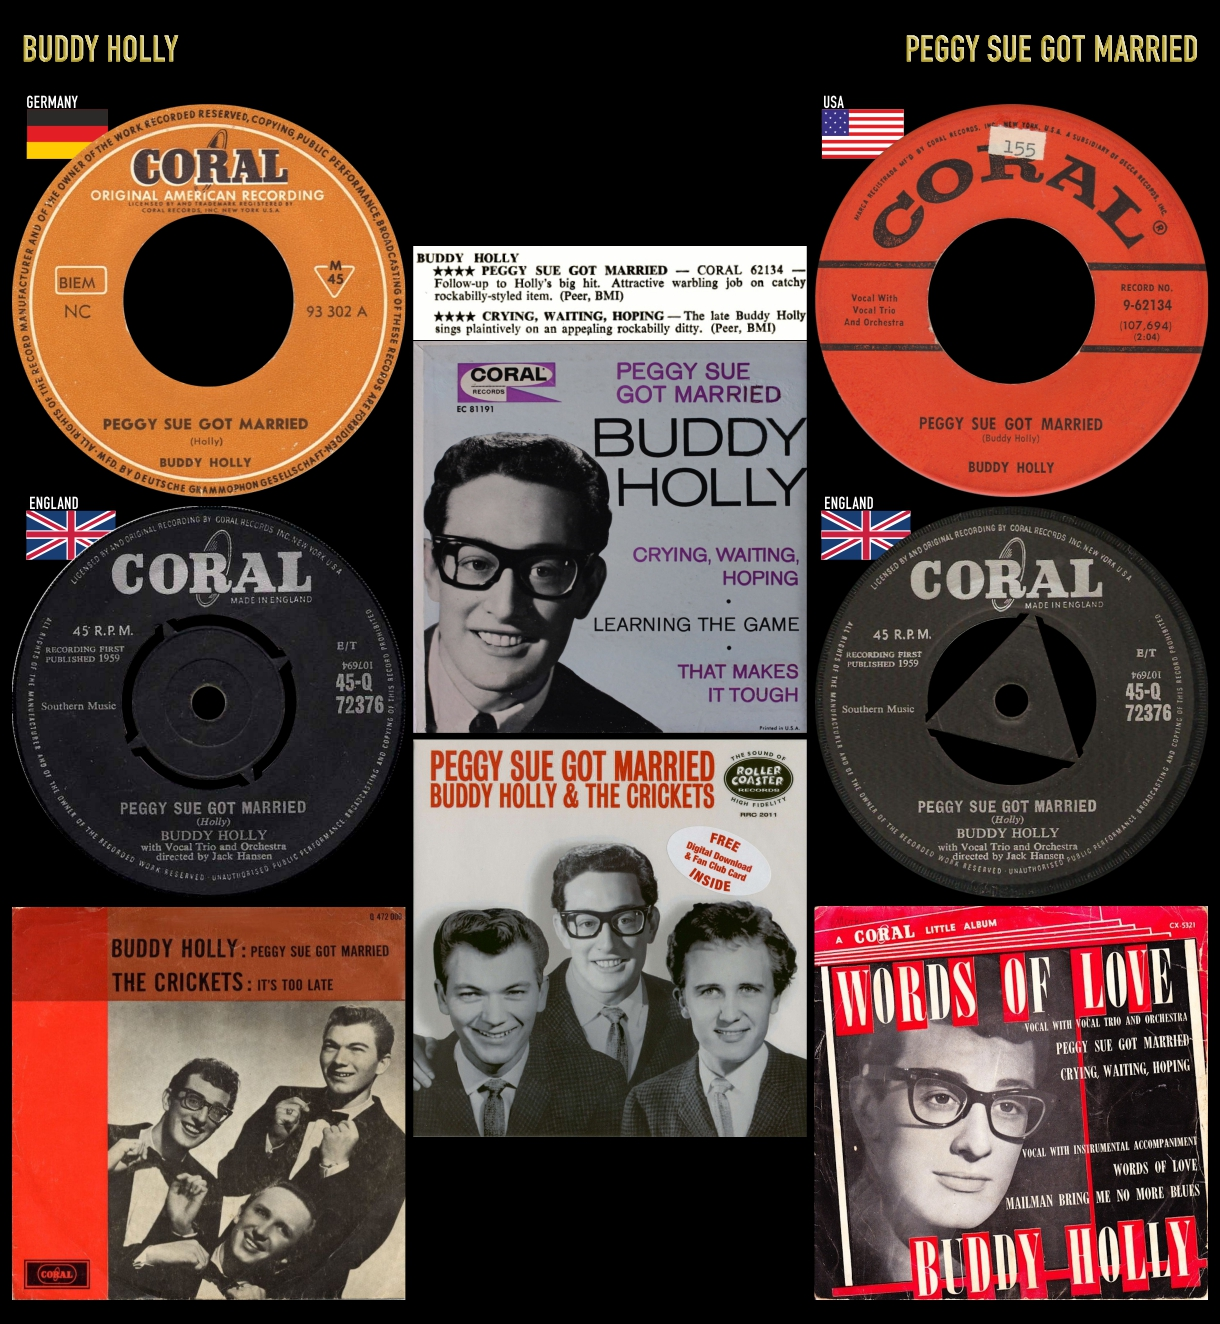 590912_Buddy Holly_Peggy Sue Got Married